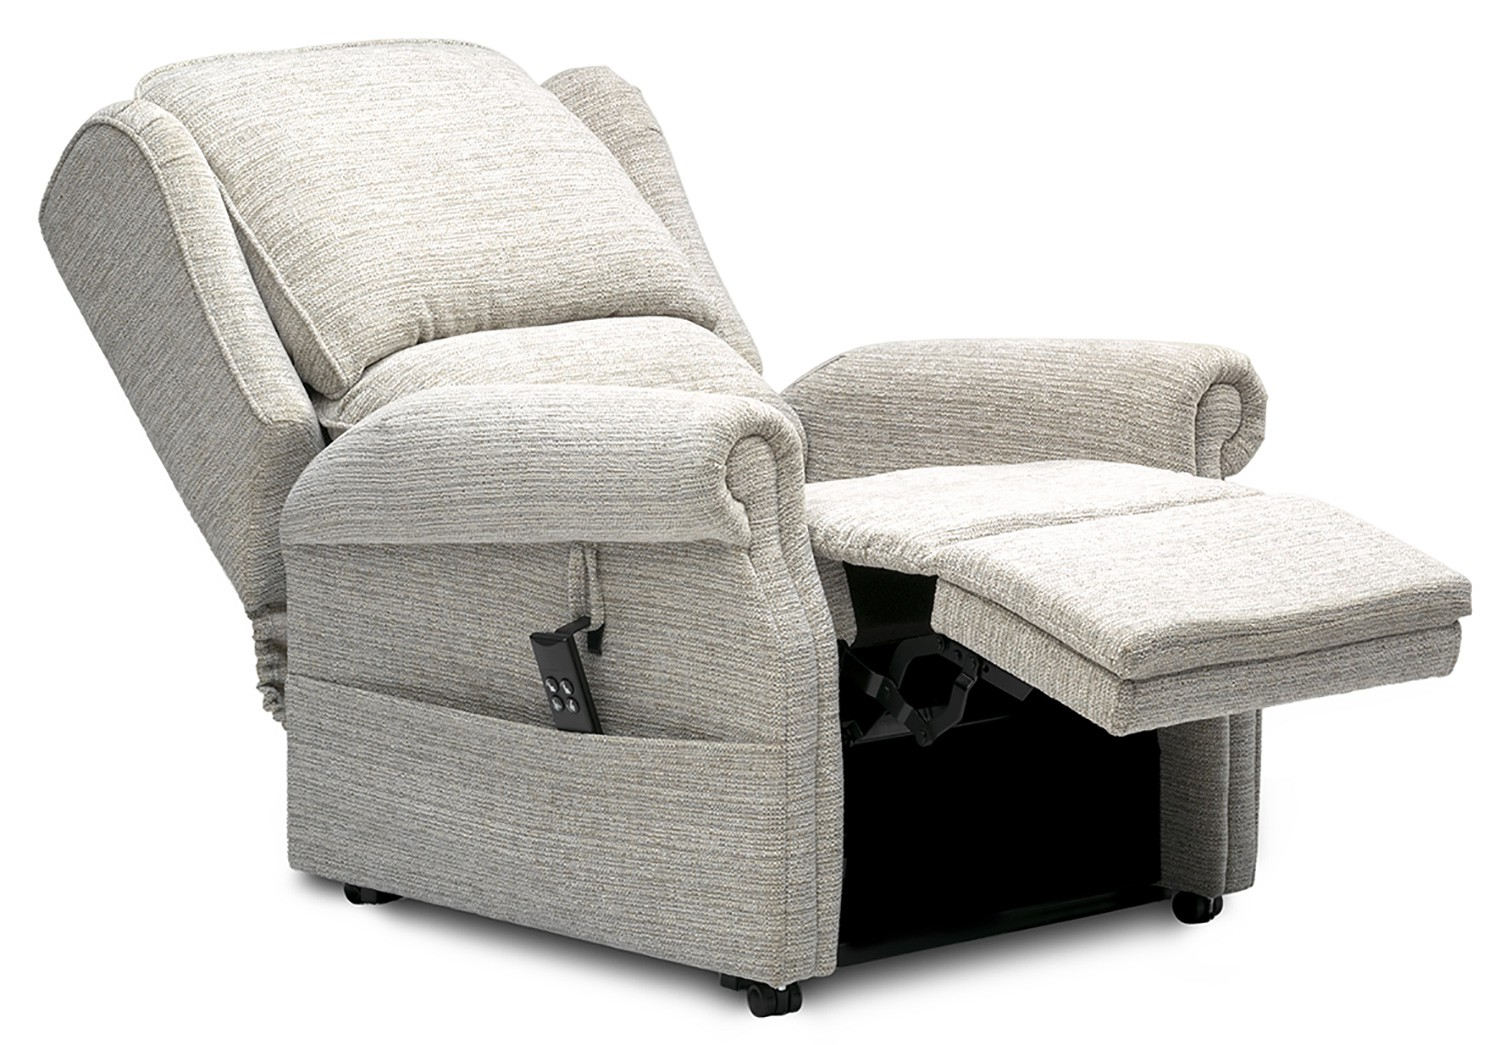 high lift chair swivel base for recliner bedale rise and recline made in britain by craftsmen